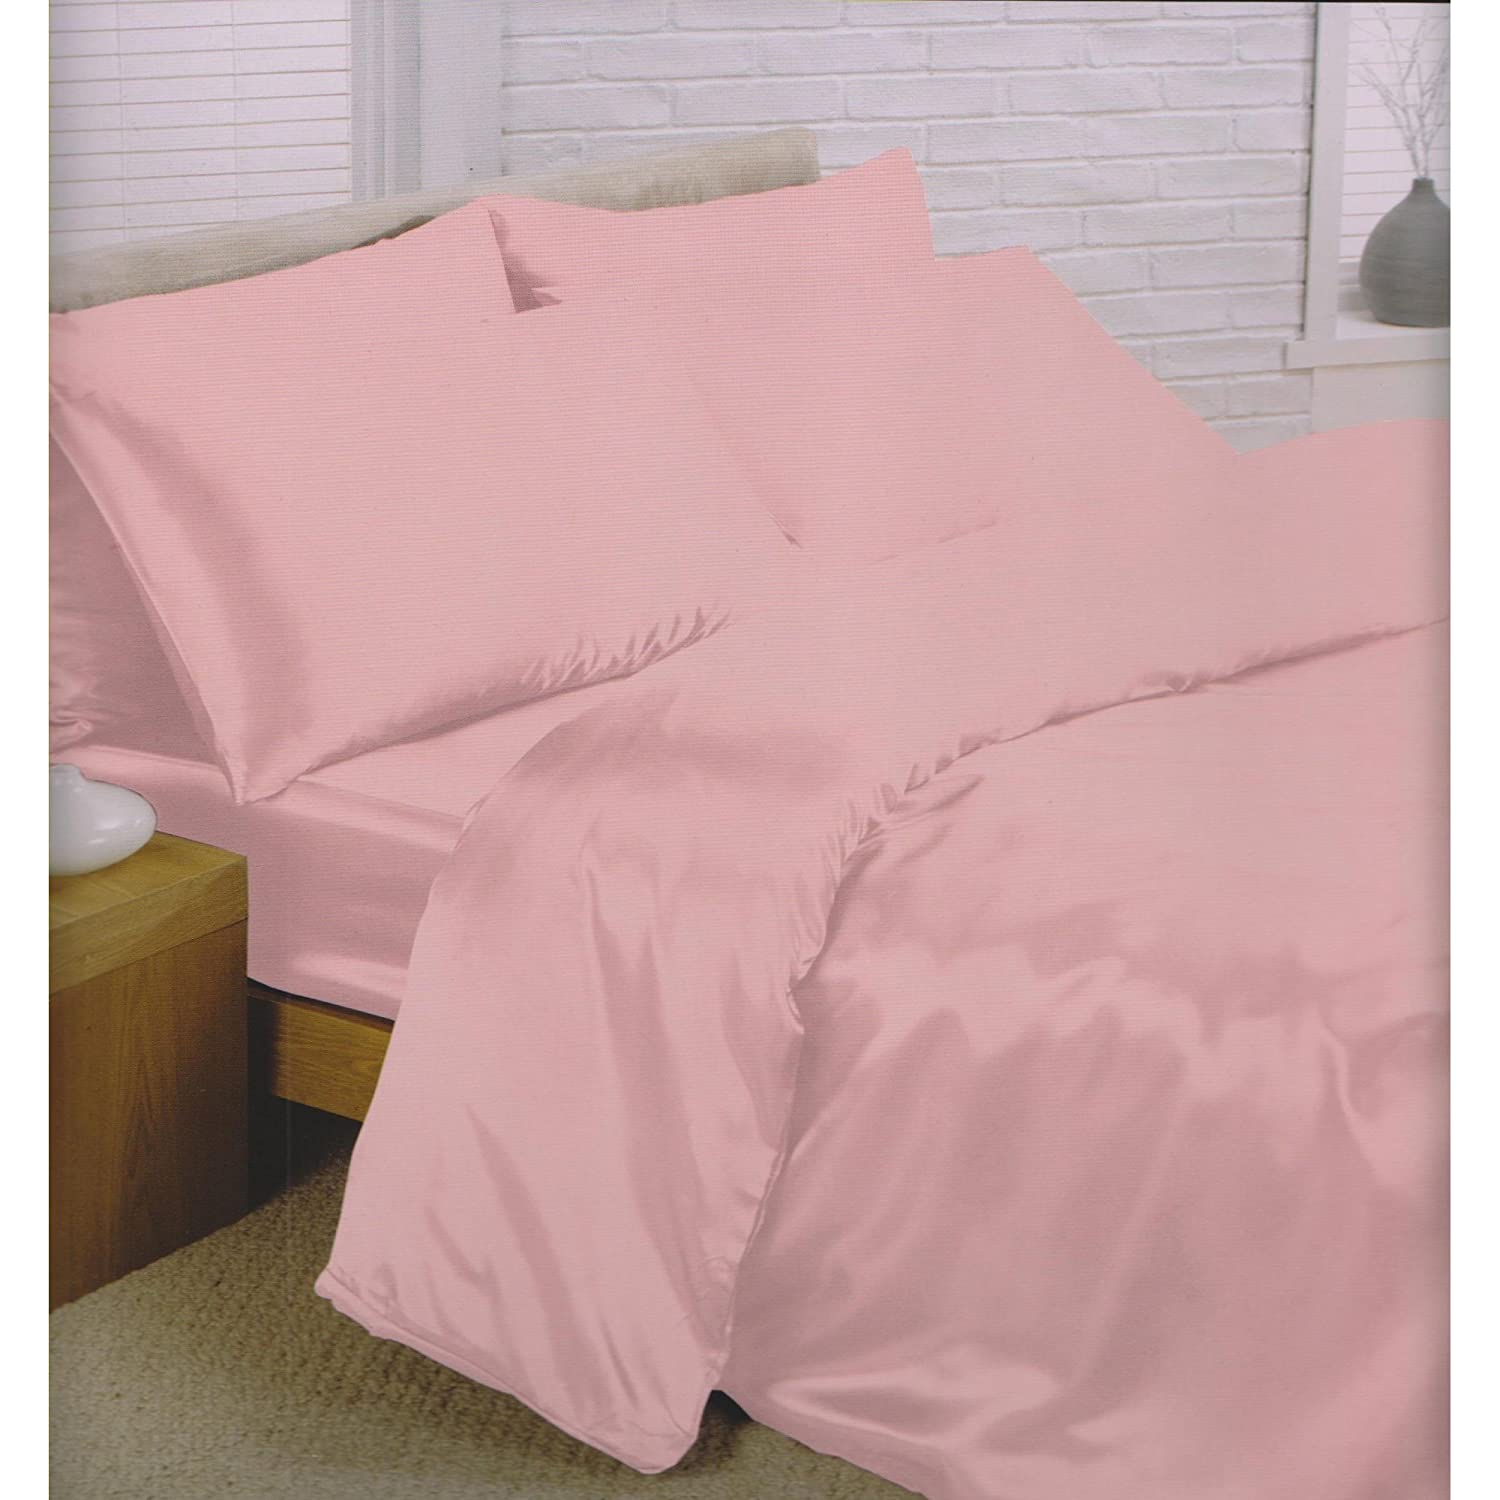 amazoncom charisma satin bedding set duvet cover fitted sheet u0026 pillowcases queen size bed cream home u0026 kitchen